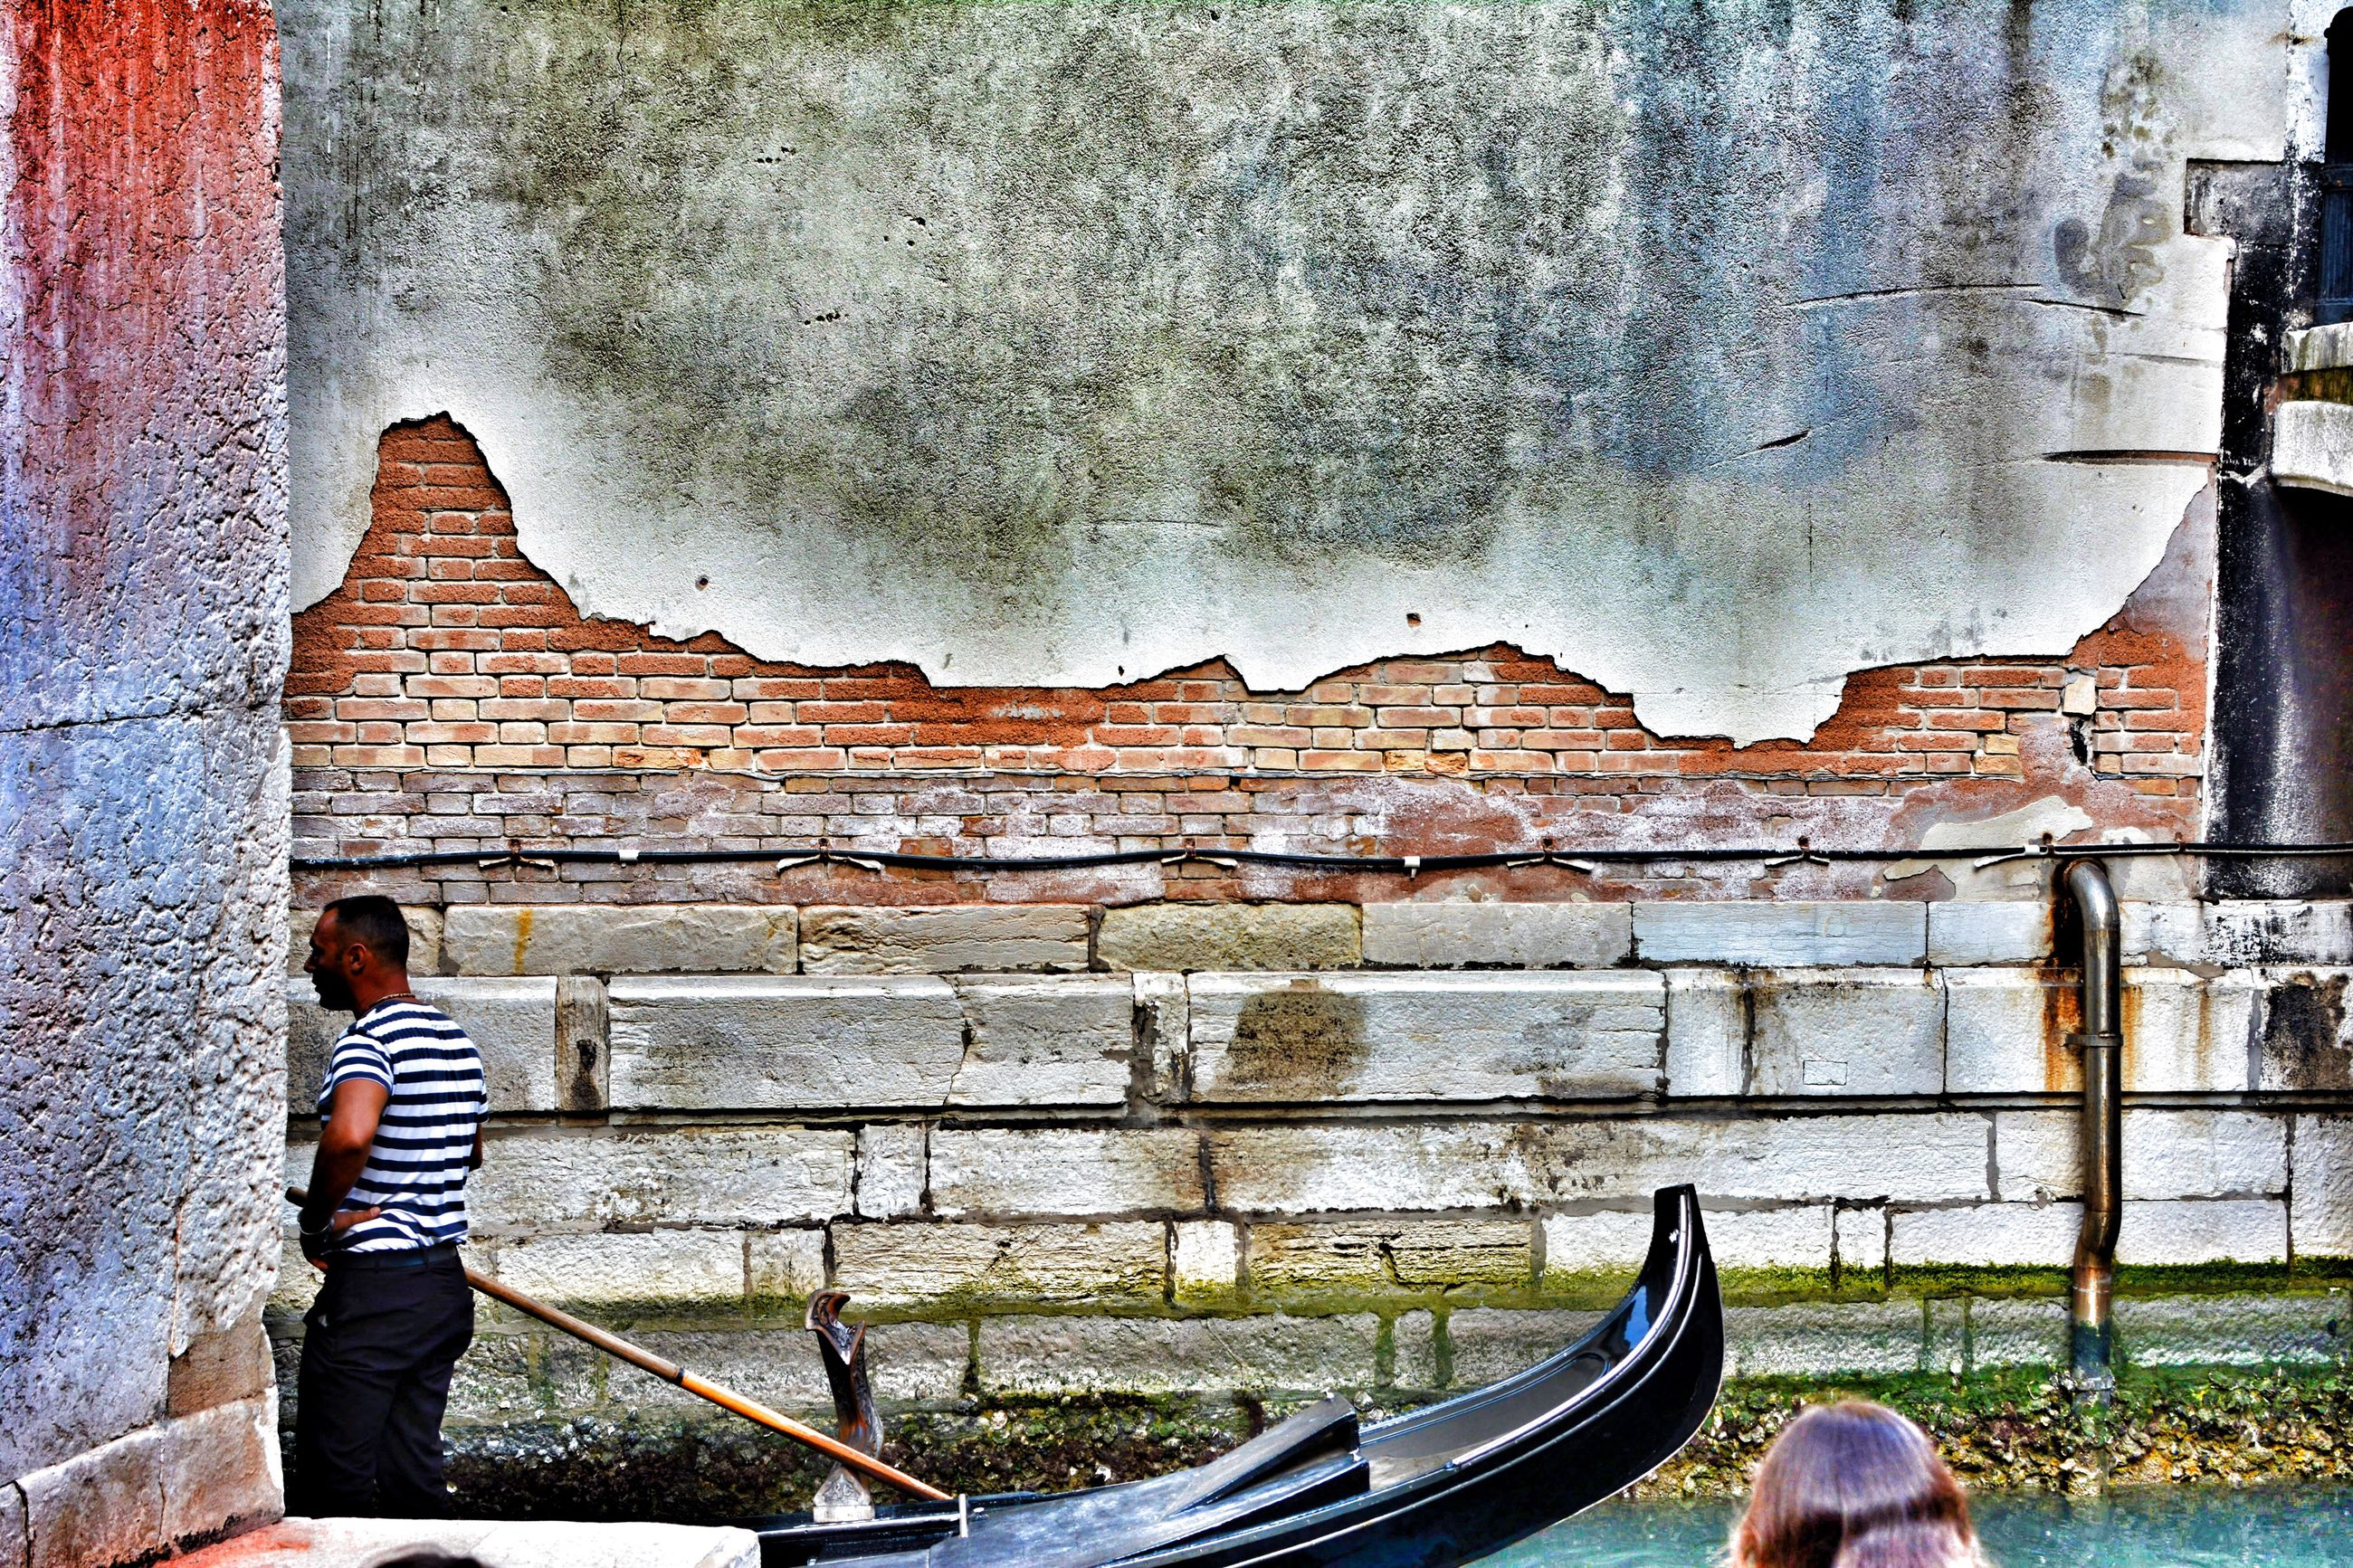 wall - building feature, brick wall, shoe, outdoors, casual clothing, day, weathered, sky